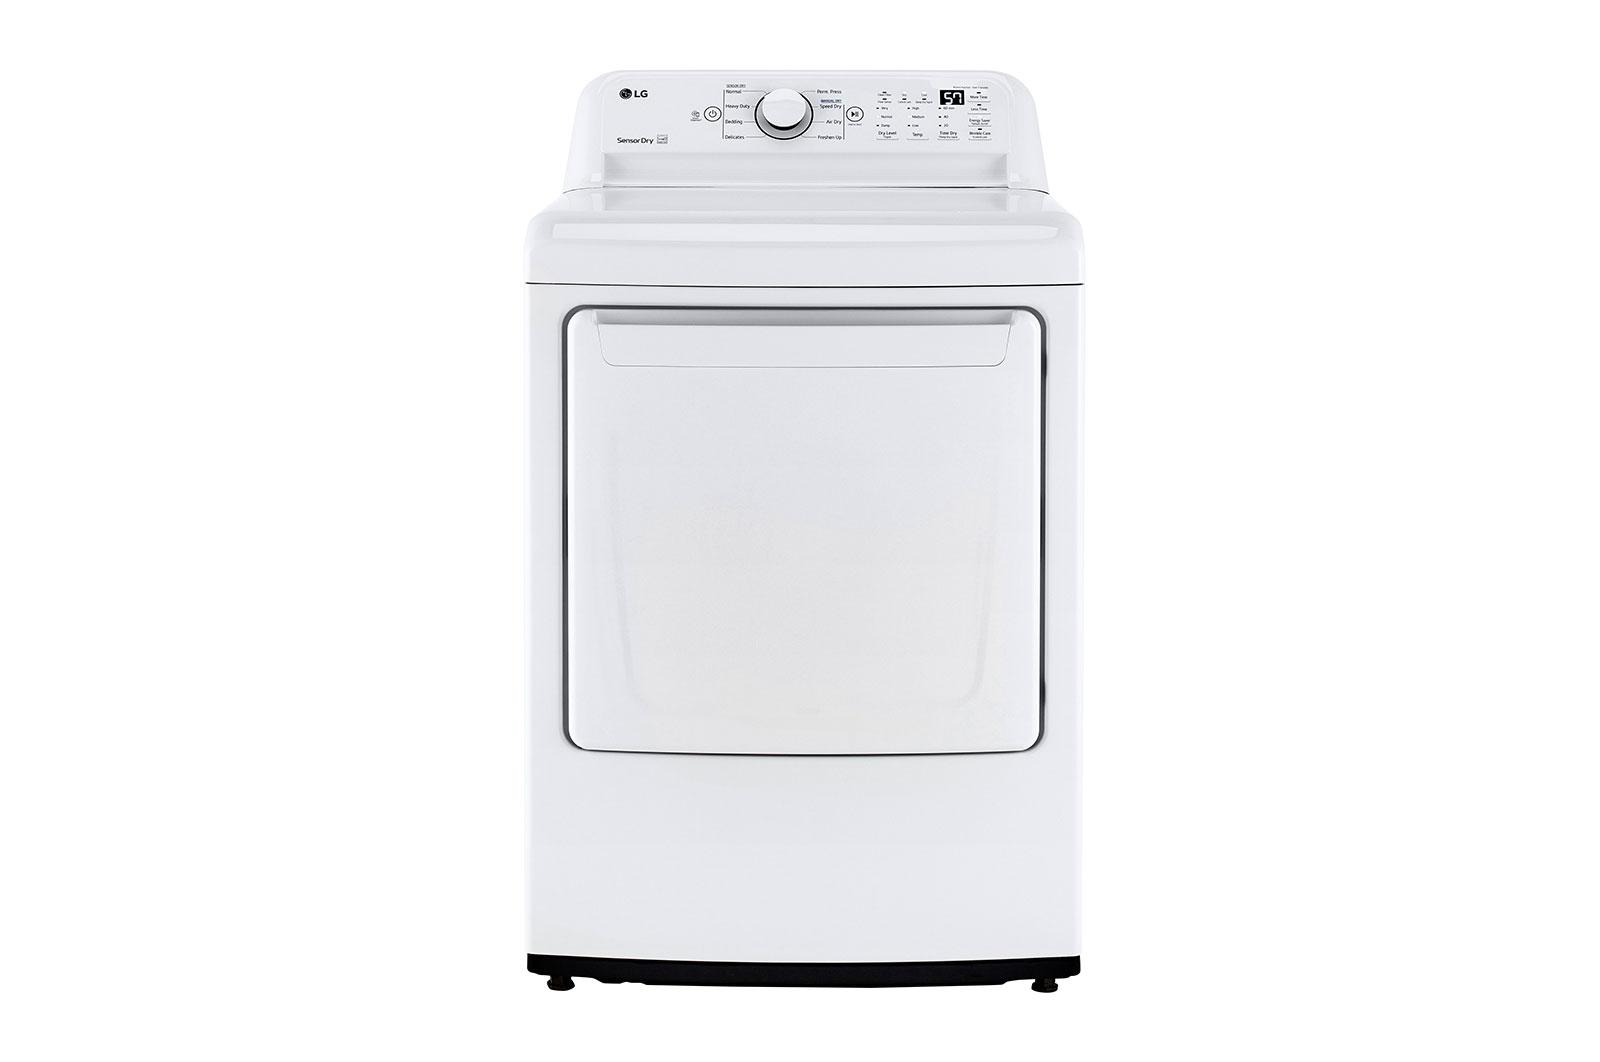 LG Appliances7.3 Cu. Ft. Ultra Large Capacity Top Load Electric Dryer With Sensor Dry Technology